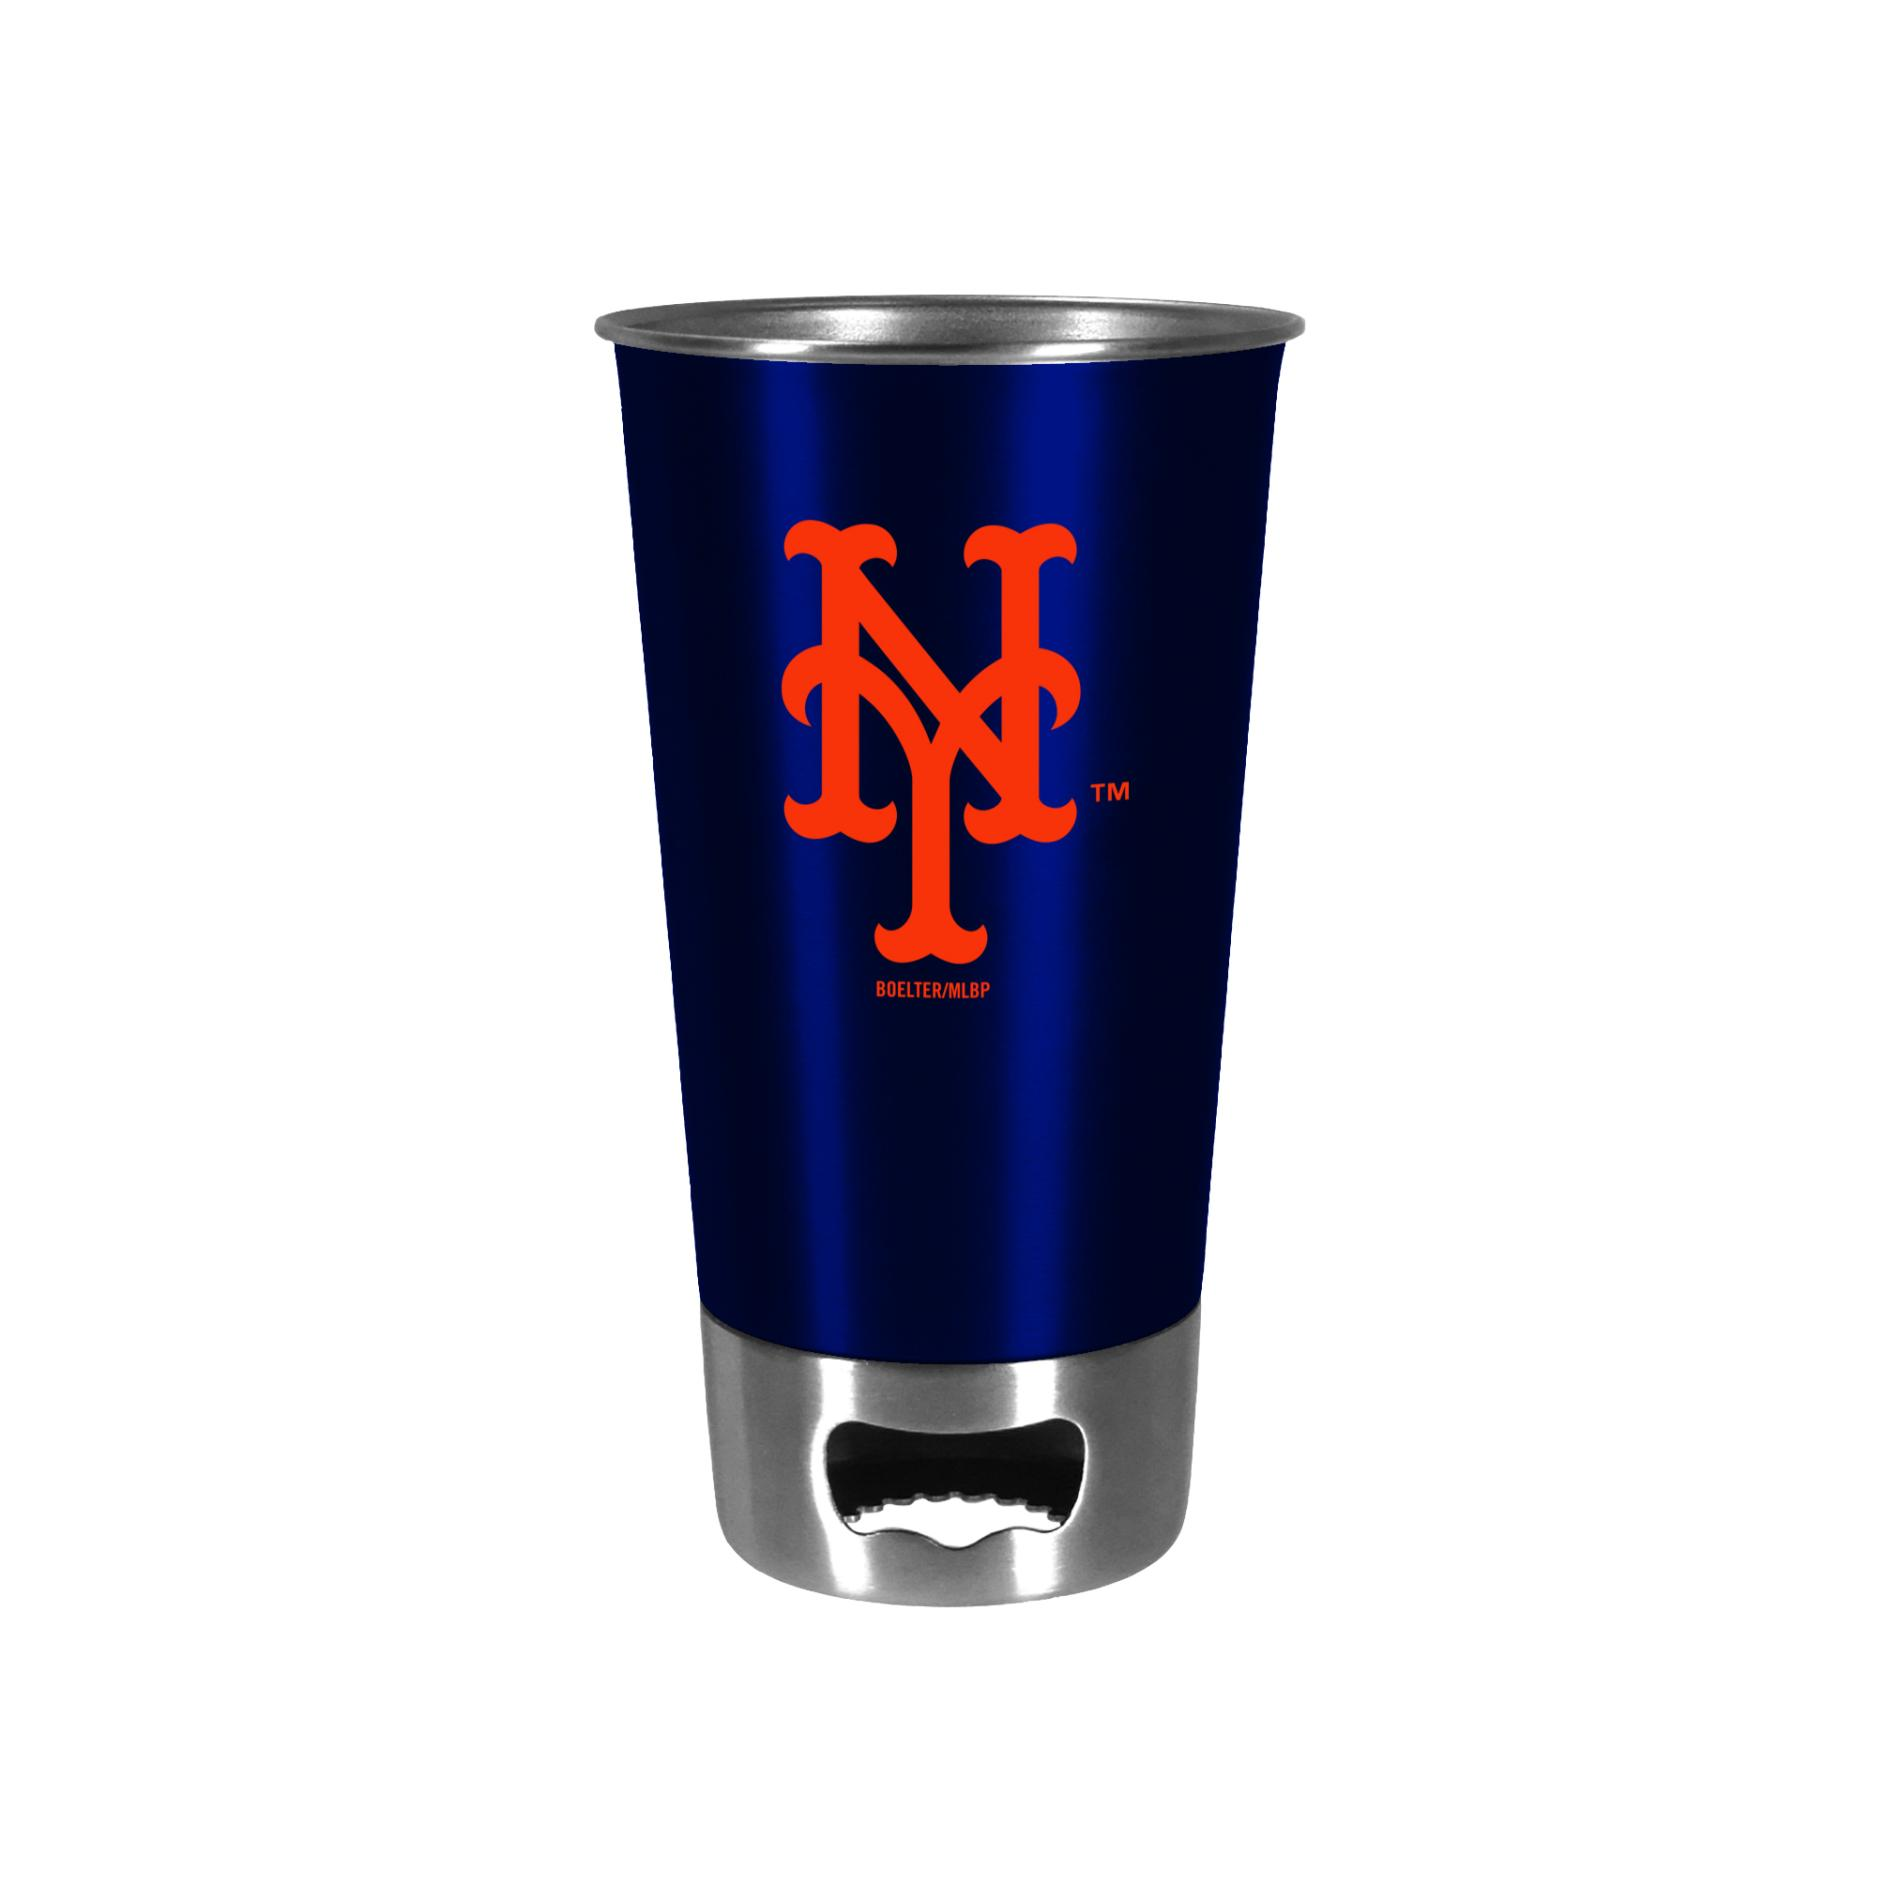 MLB Bottle Opener Metal Cup - New York Mets PartNumber: 046W001249298001P KsnValue: 1249298 MfgPartNumber: 380292